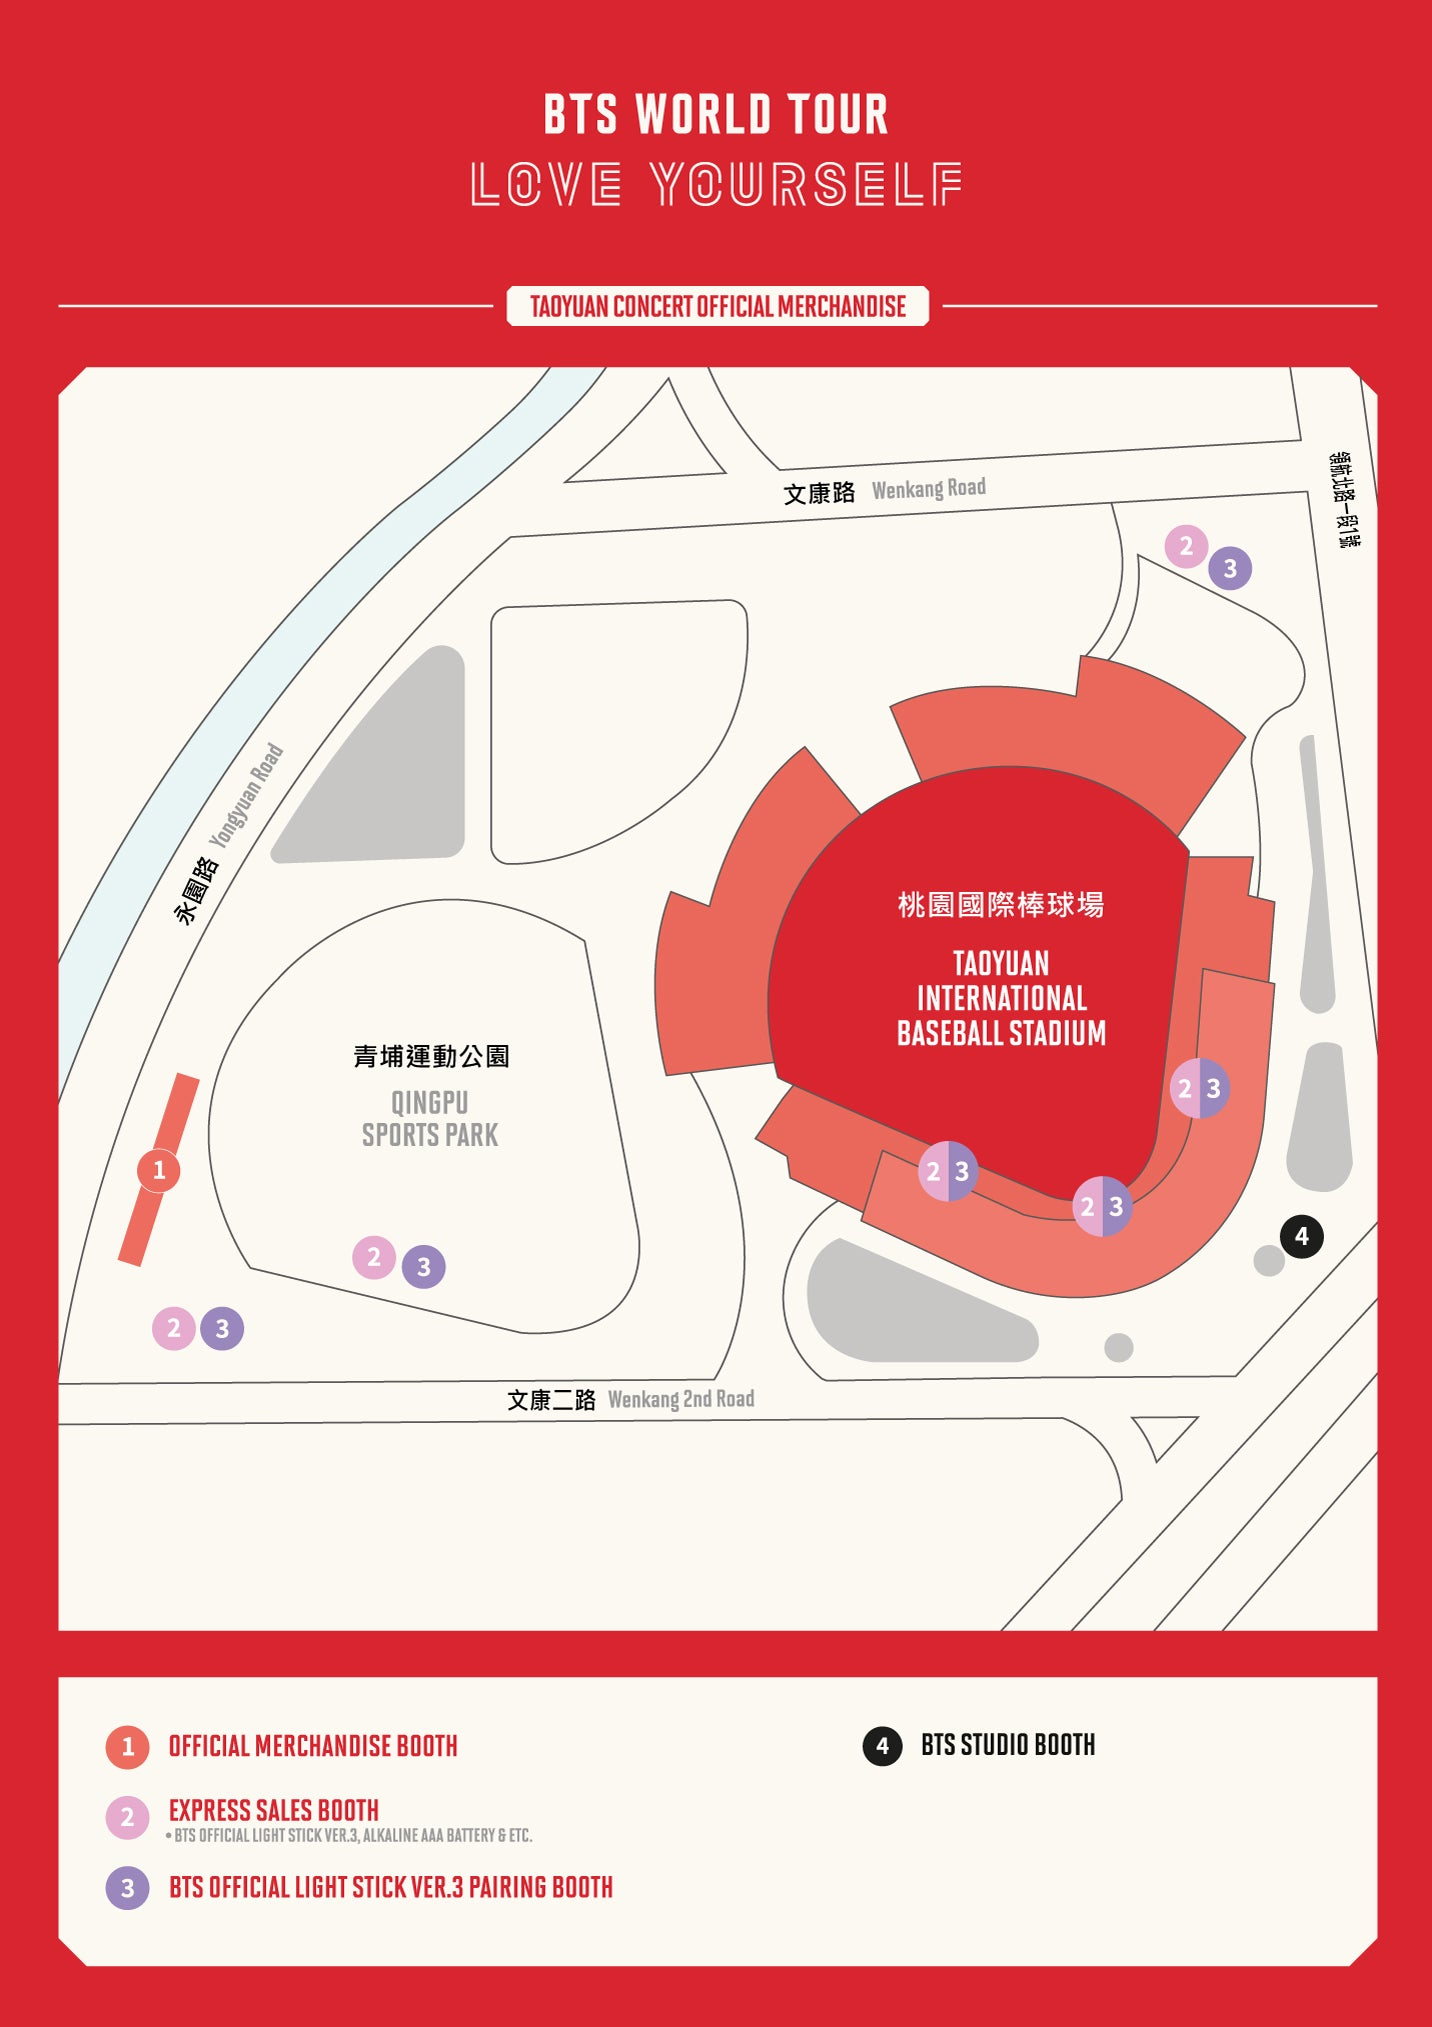 BTS WORLD TOUR LOVE YOURSELF TAOYUAN 官方周邊商品公告